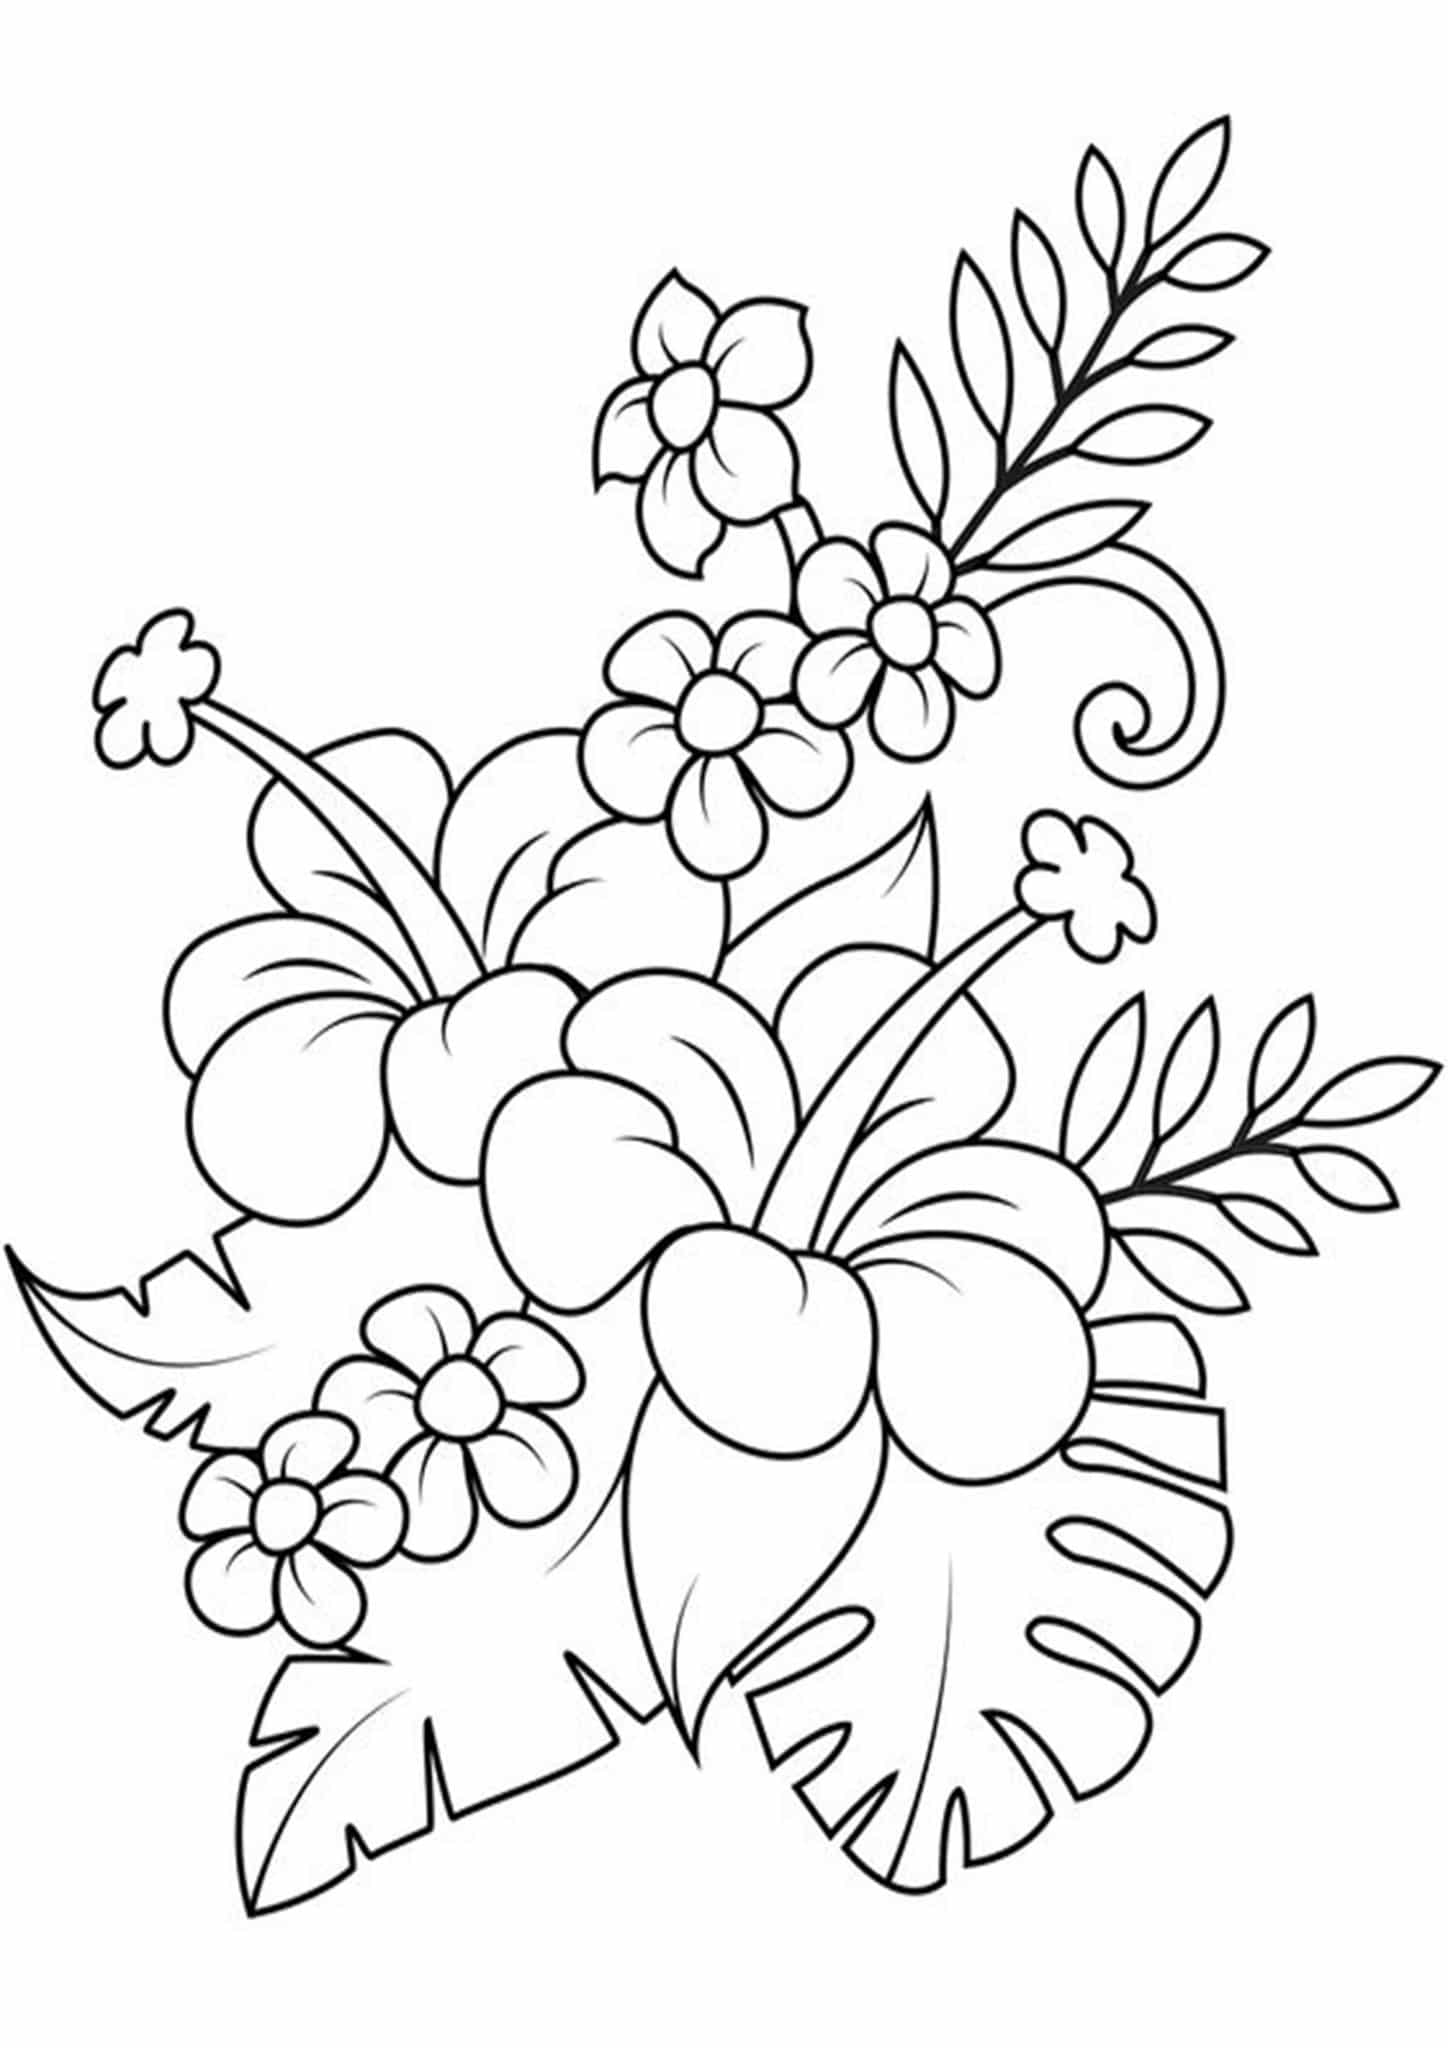 flowers coloring sheet coloring town flowers sheet coloring